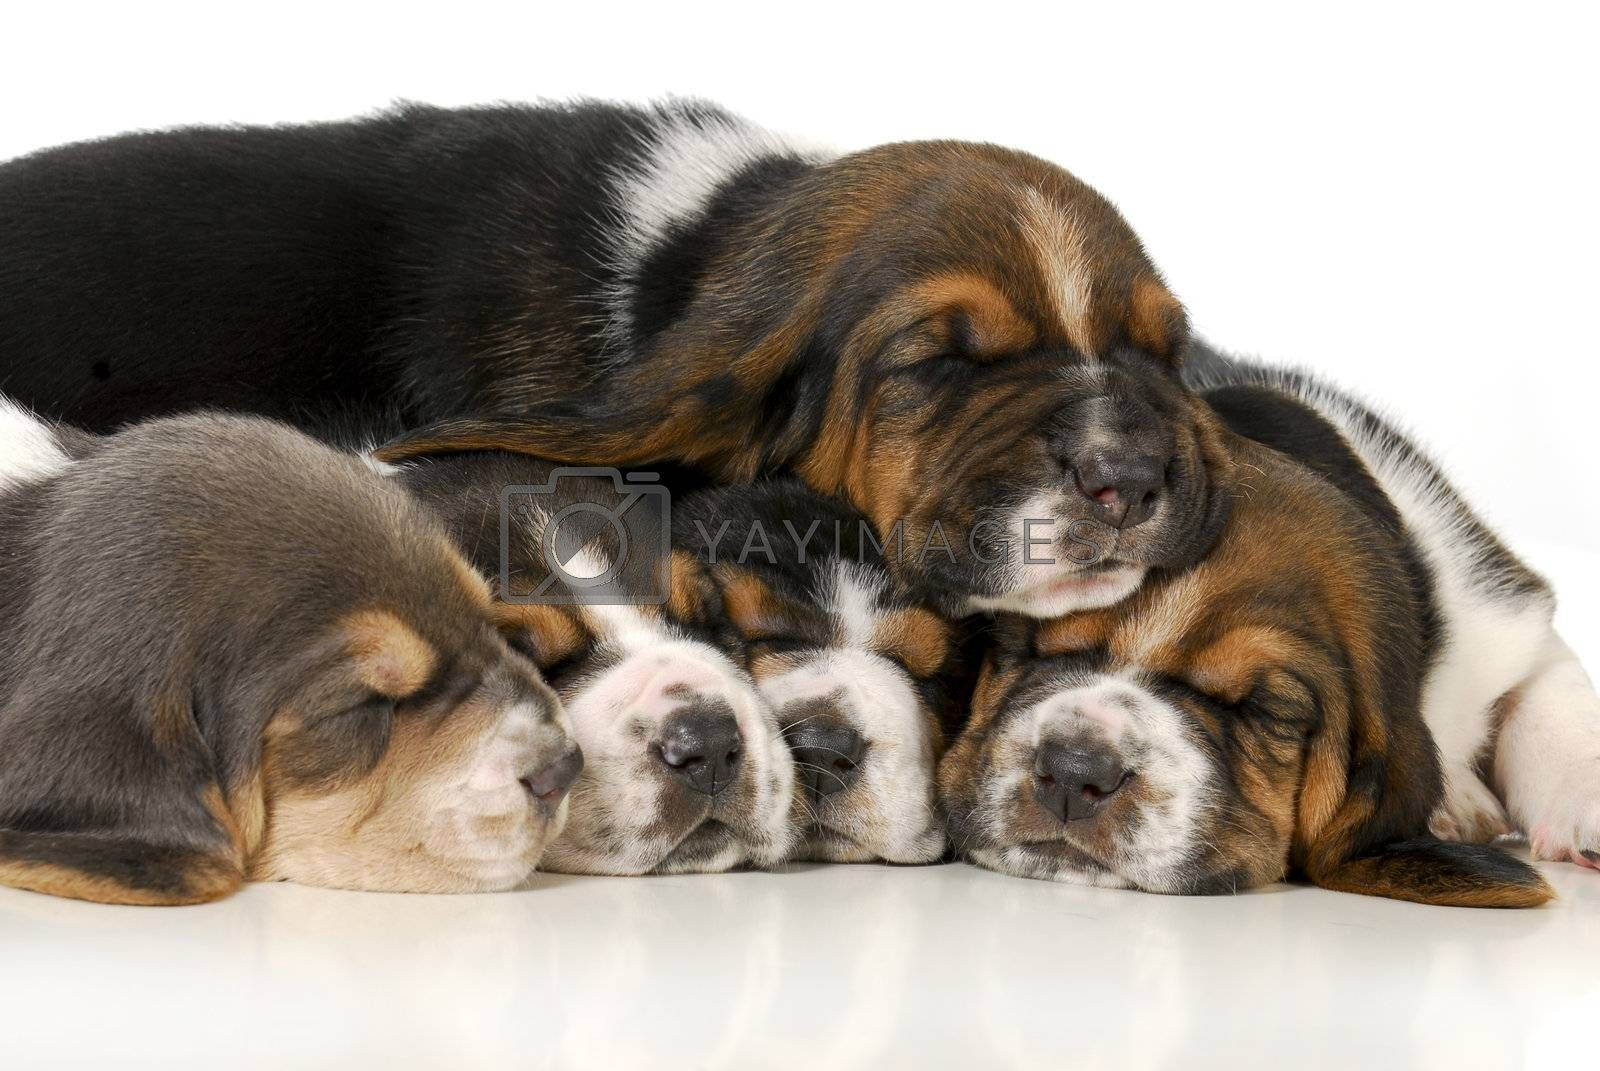 pile of puppies - litter of basset hound puppies - 3 weeks old